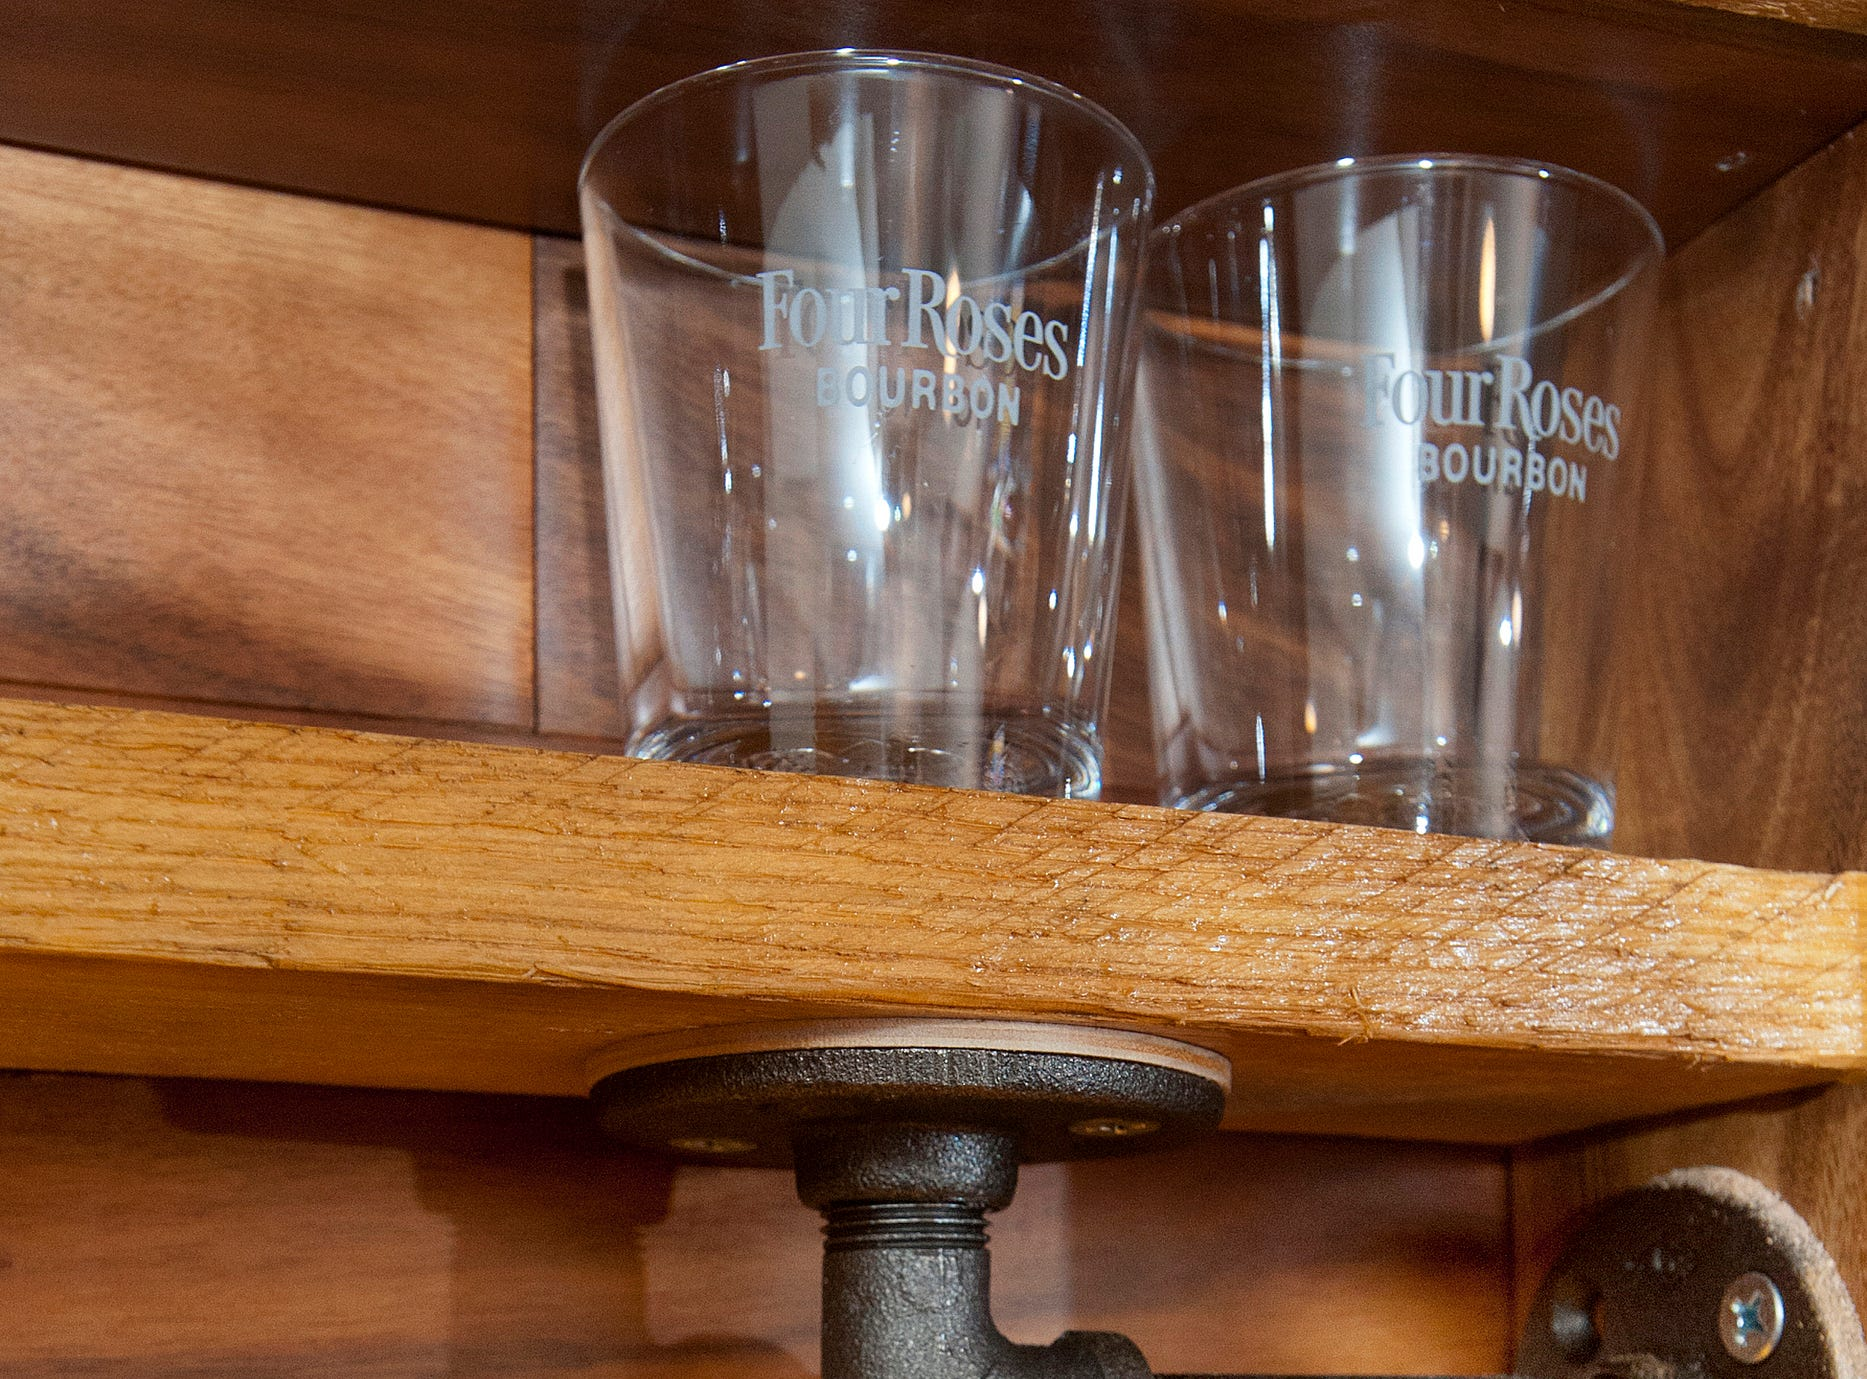 Bourbon glasses collected by the Cliffords are on display in the bourbon bar in their basement, built by Cliff Clifford using pipe fittings as shelf supports.